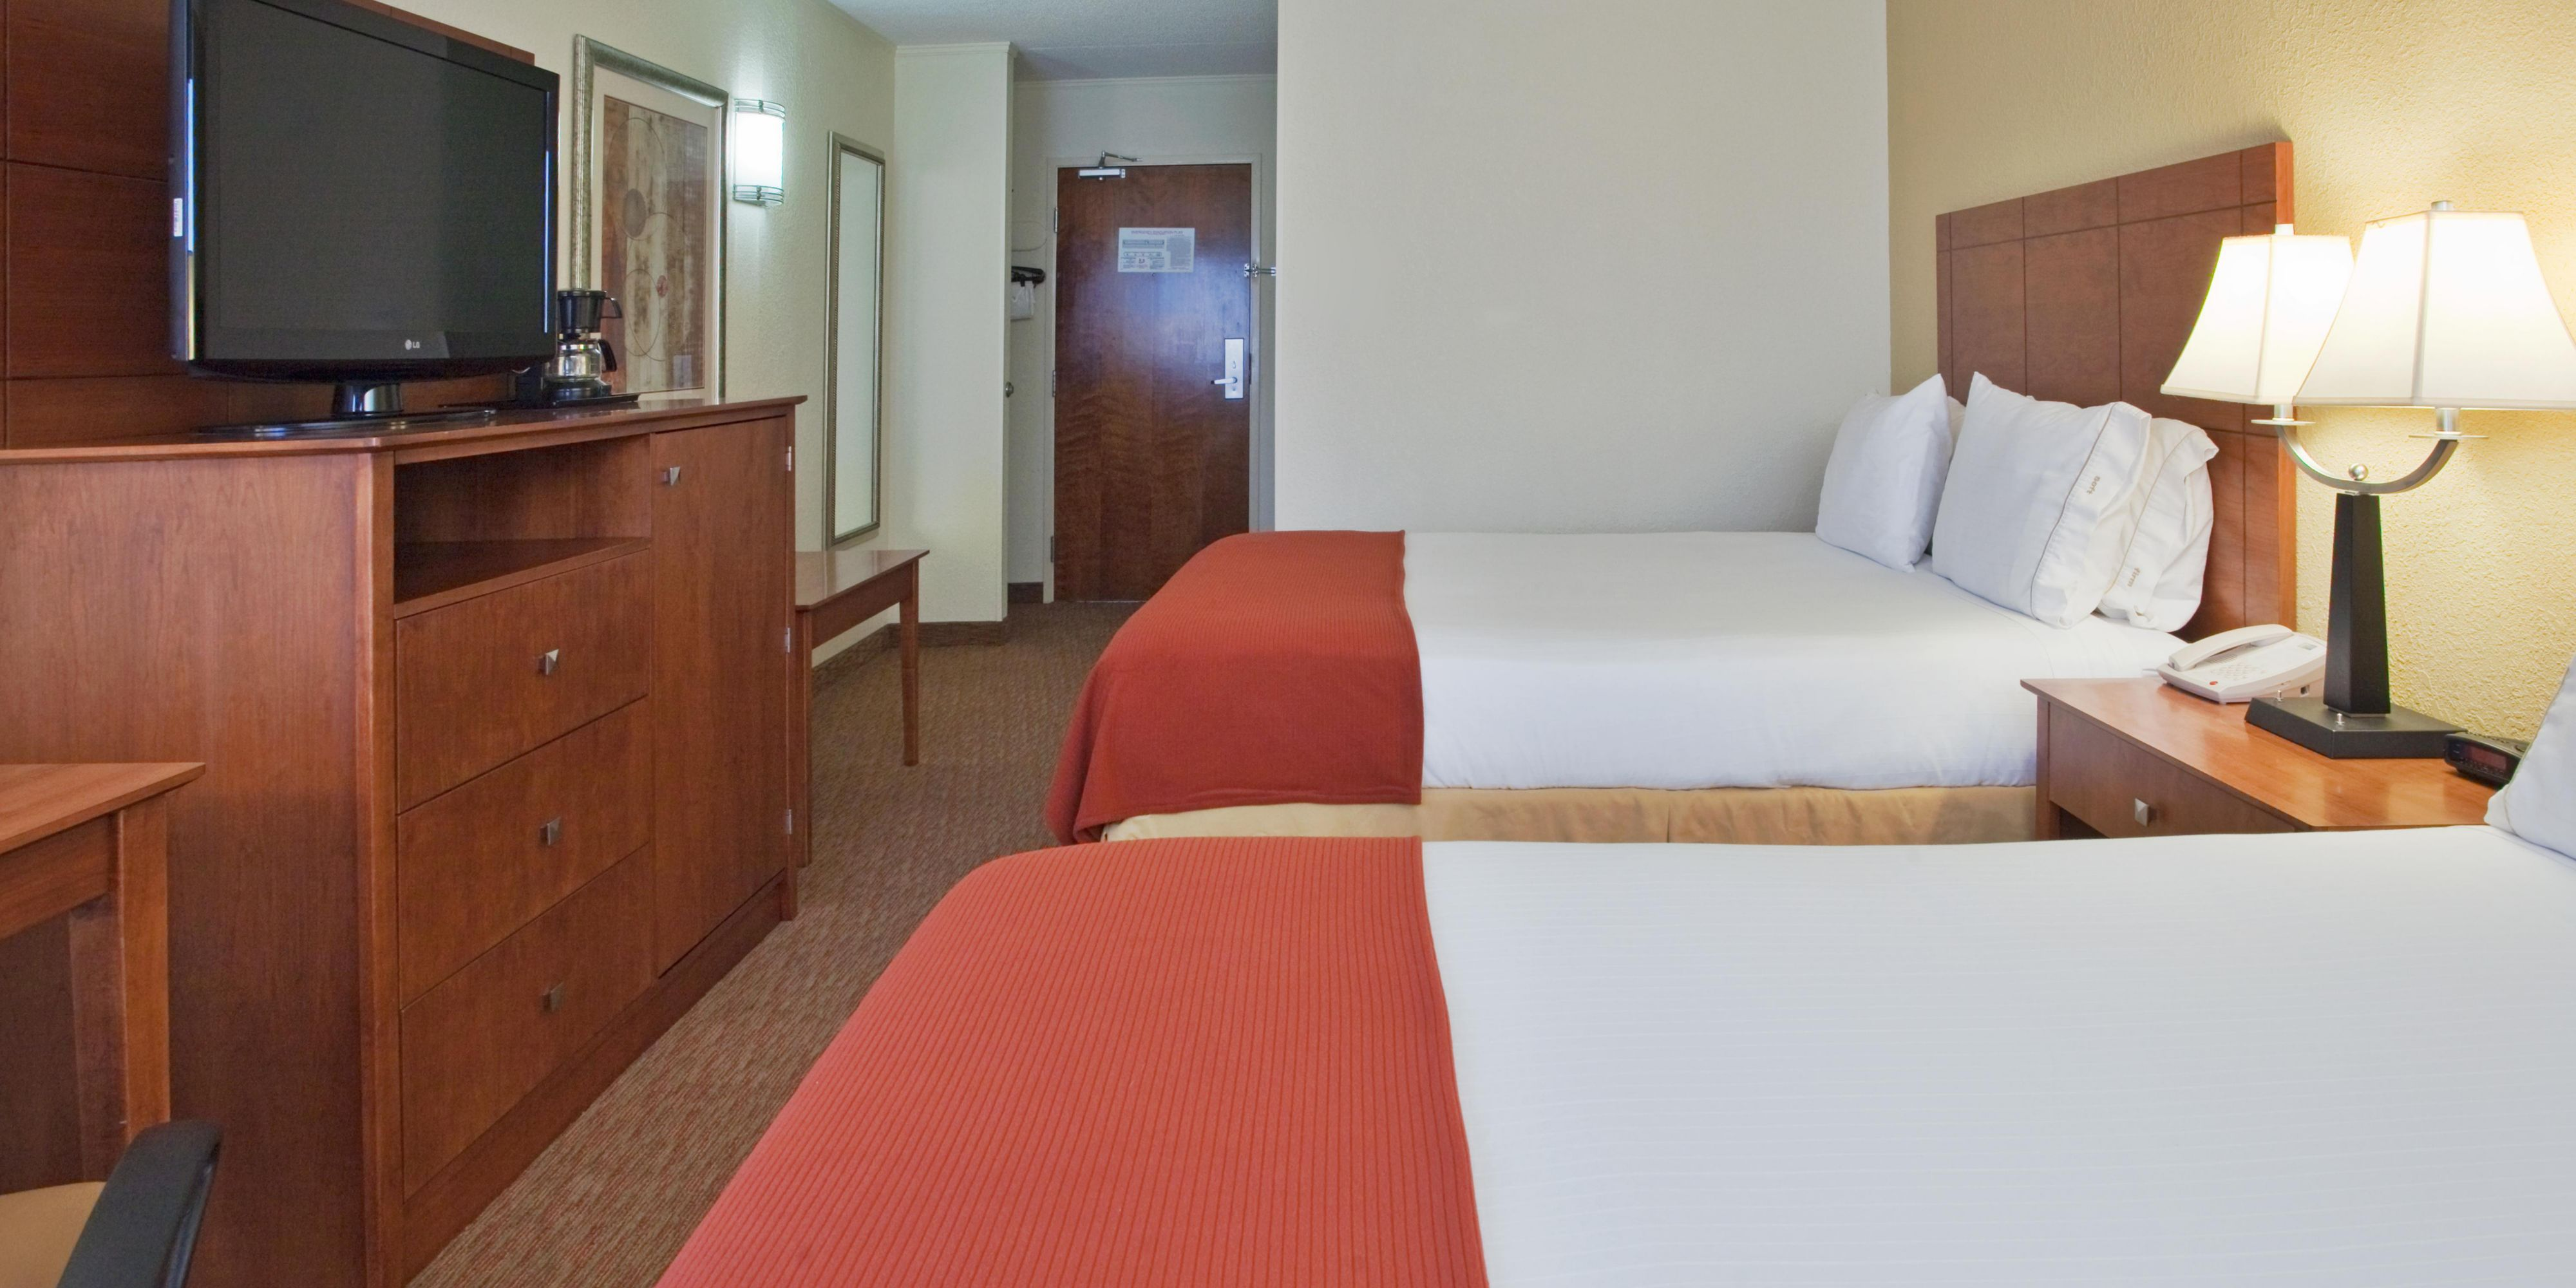 Genial Holiday Inn Express Lynchburg 4284854975 2x1